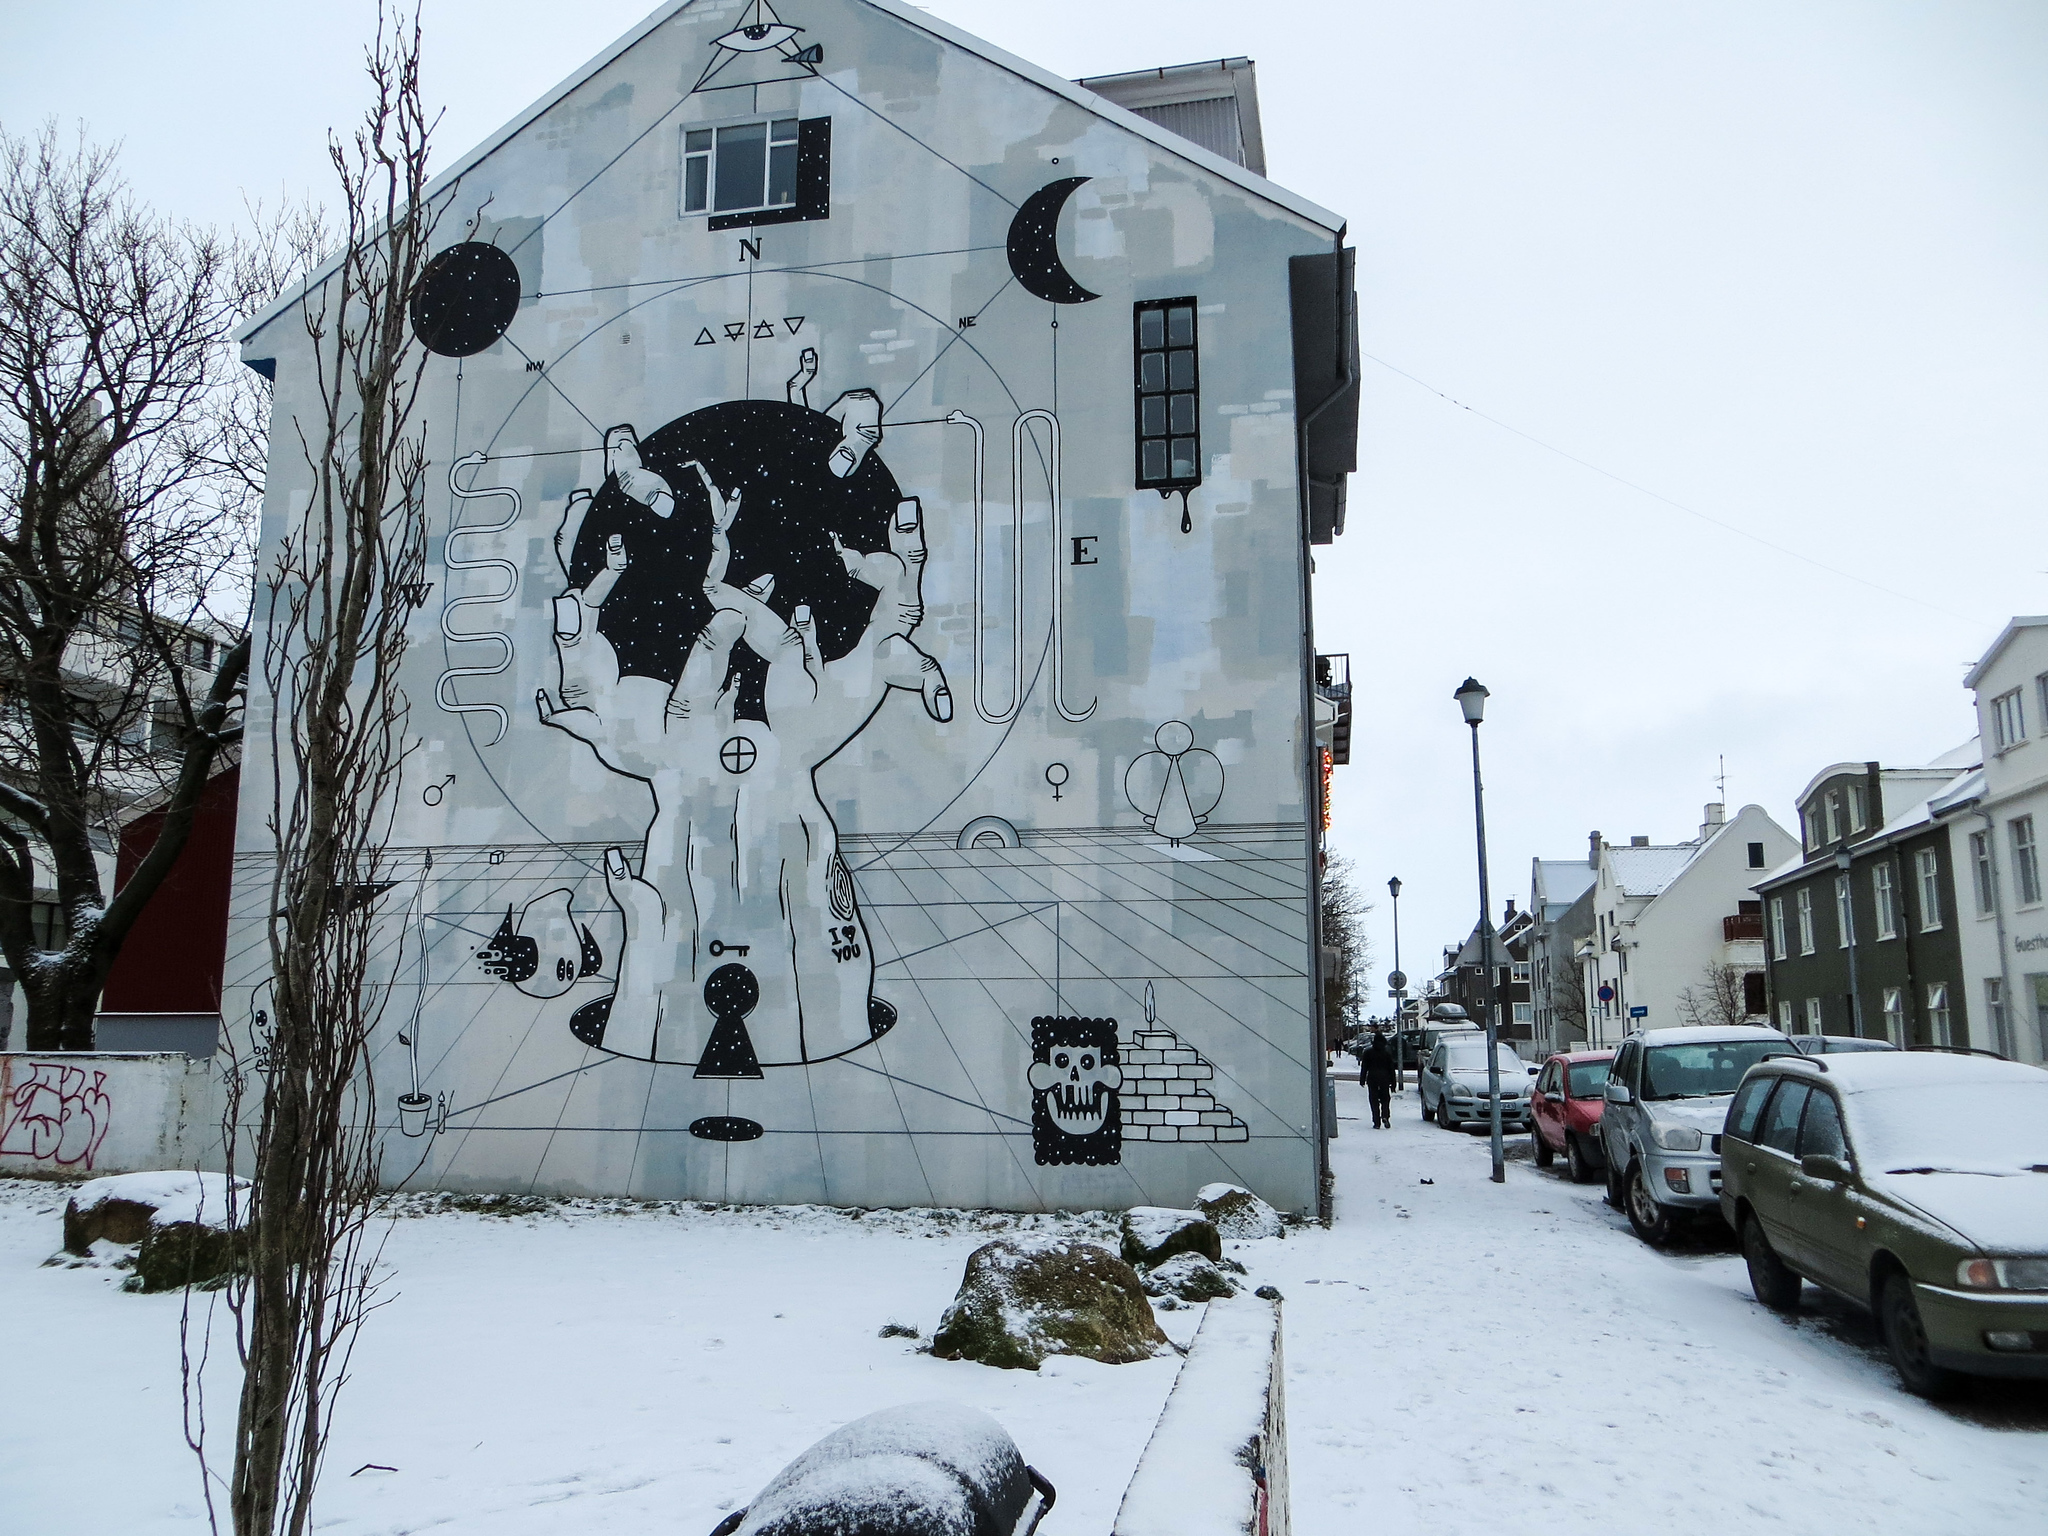 traveling solo to iceland means seeing awesome street art